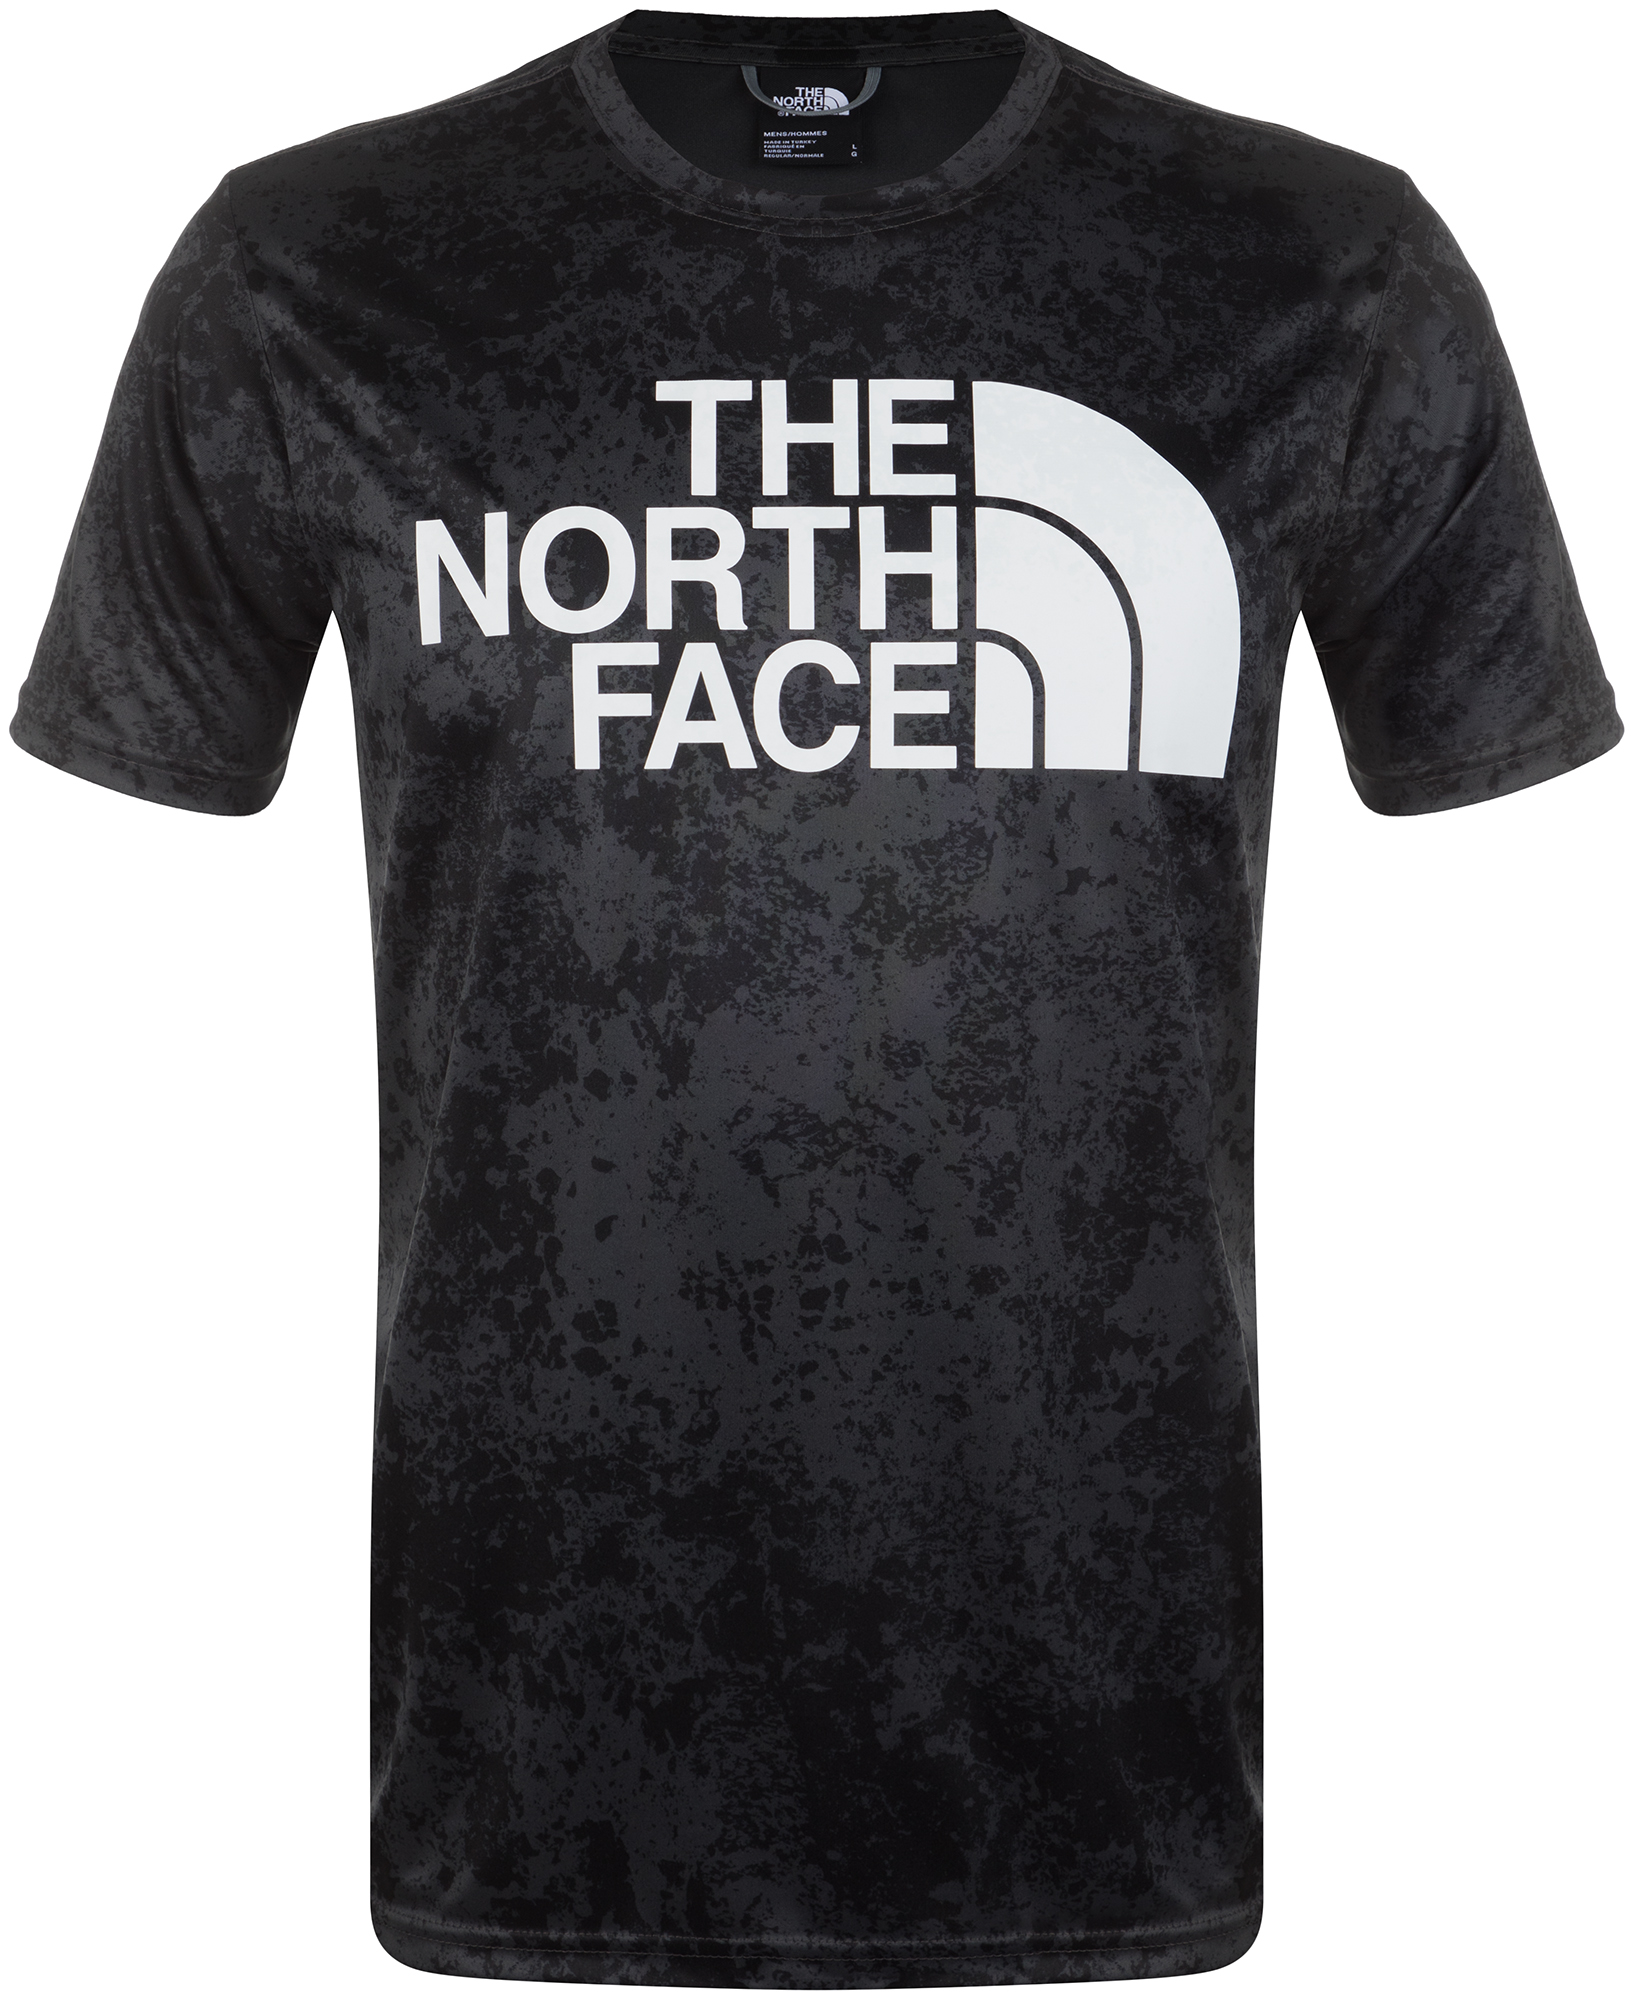 The North Face Футболка мужская The North Face Reaxion Easy, размер 50